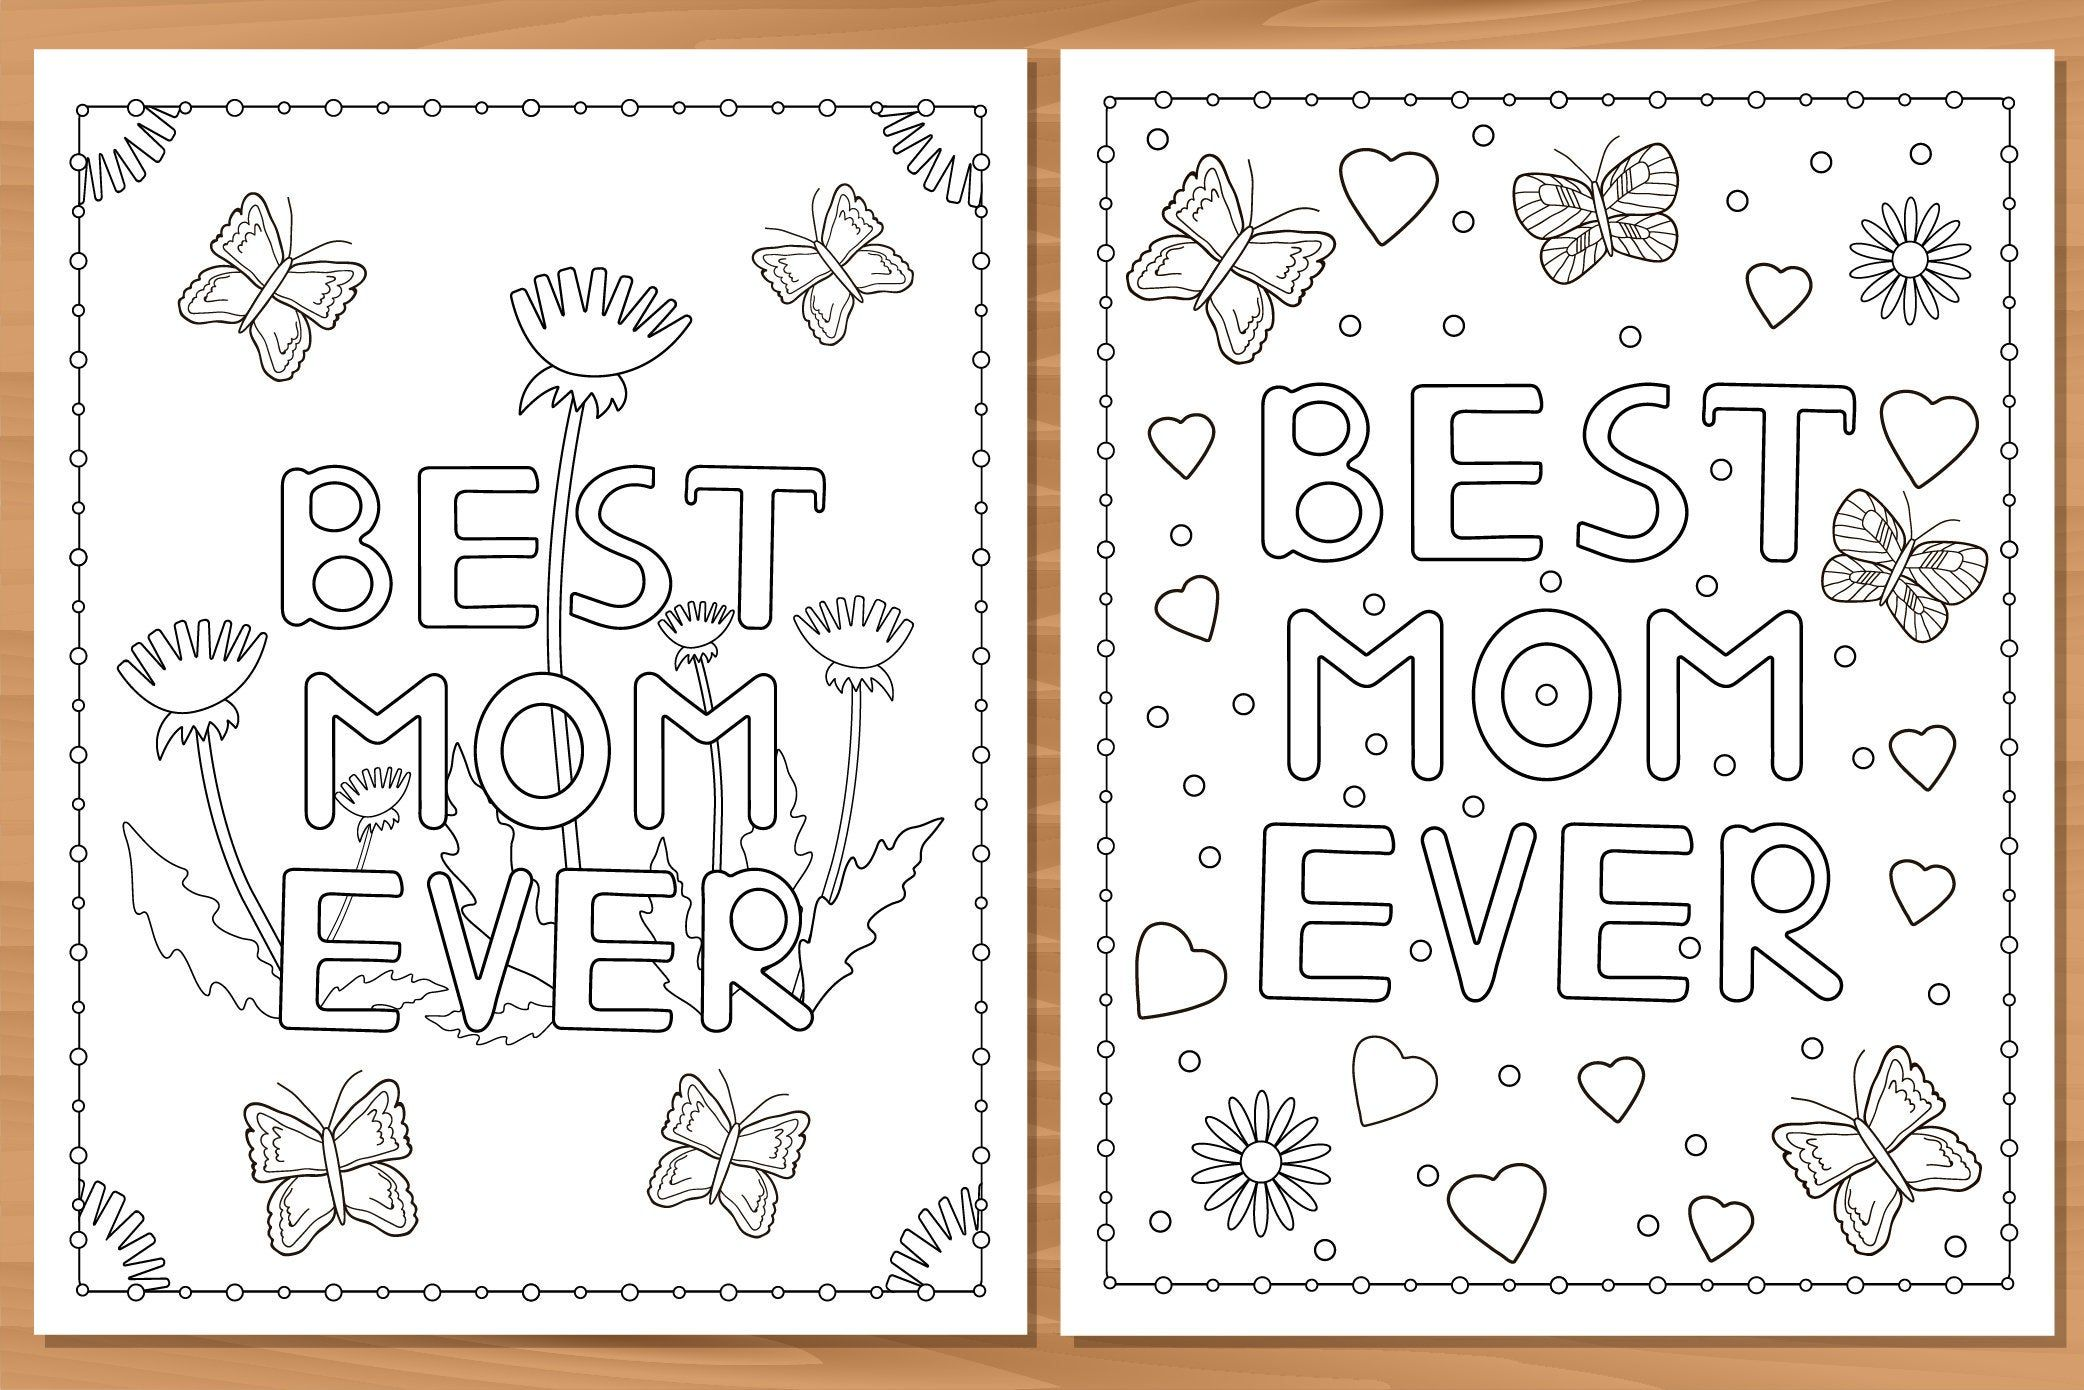 4 Printable Coloring Pages Best Mom Ever Mom I Love You Etsy In 2021 Printable Coloring Pages Coloring Pages Printable Coloring